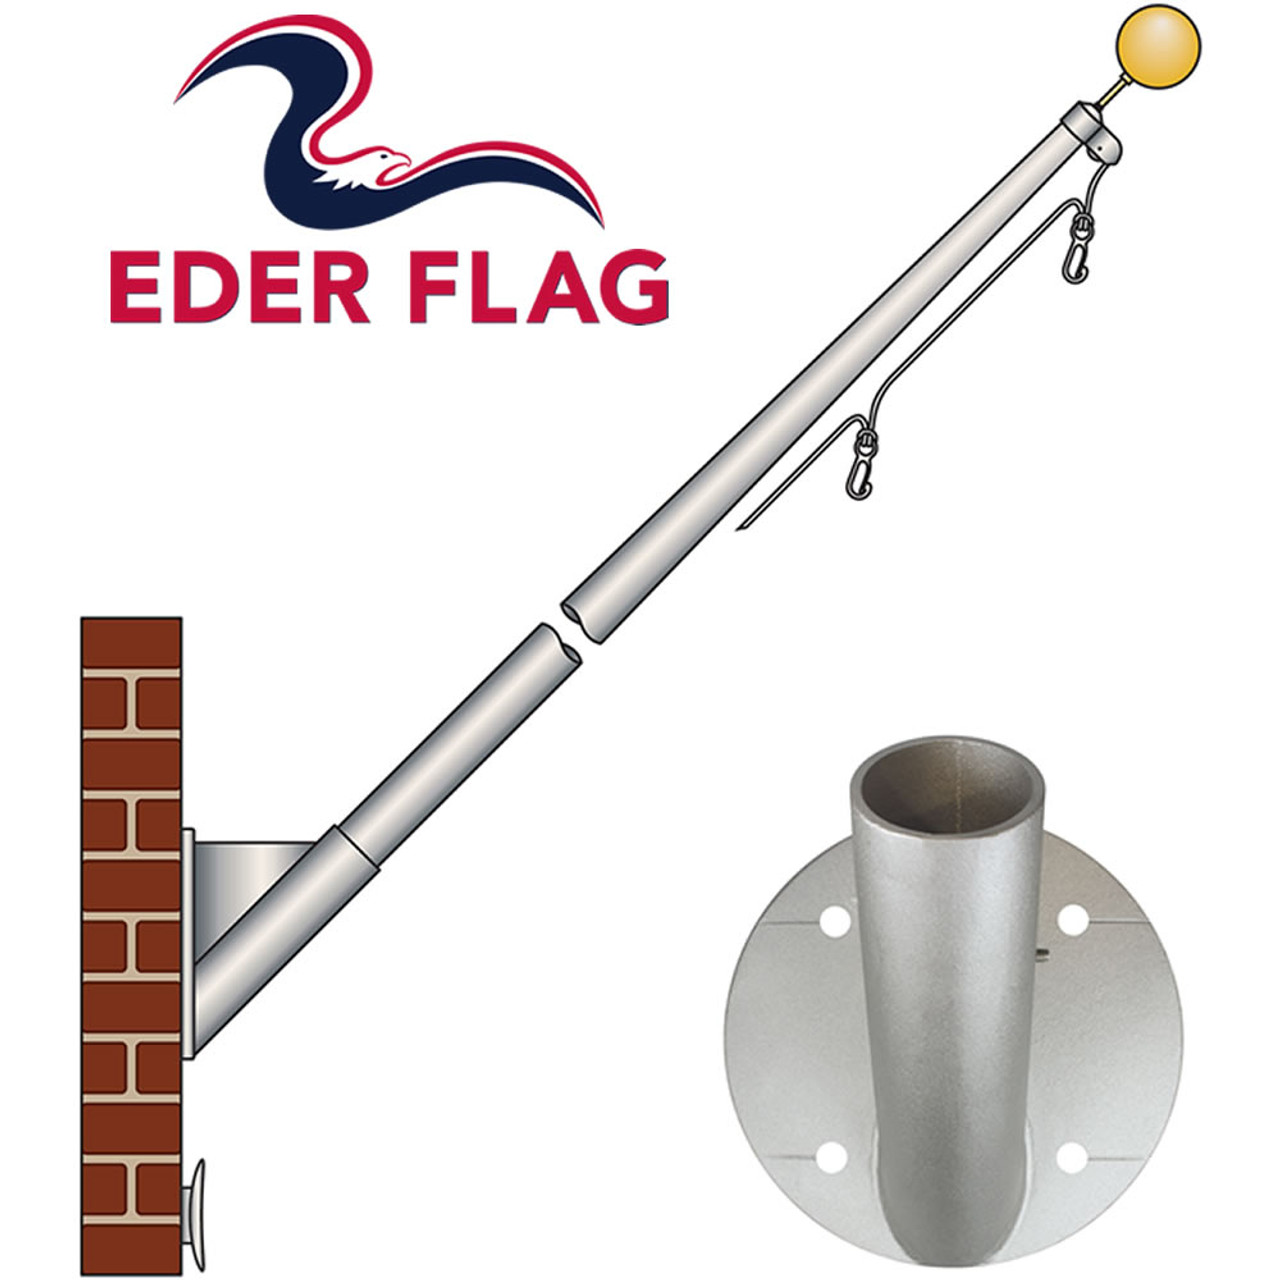 Eder Flag ECOST Aluminum Outrigger Flagpoles